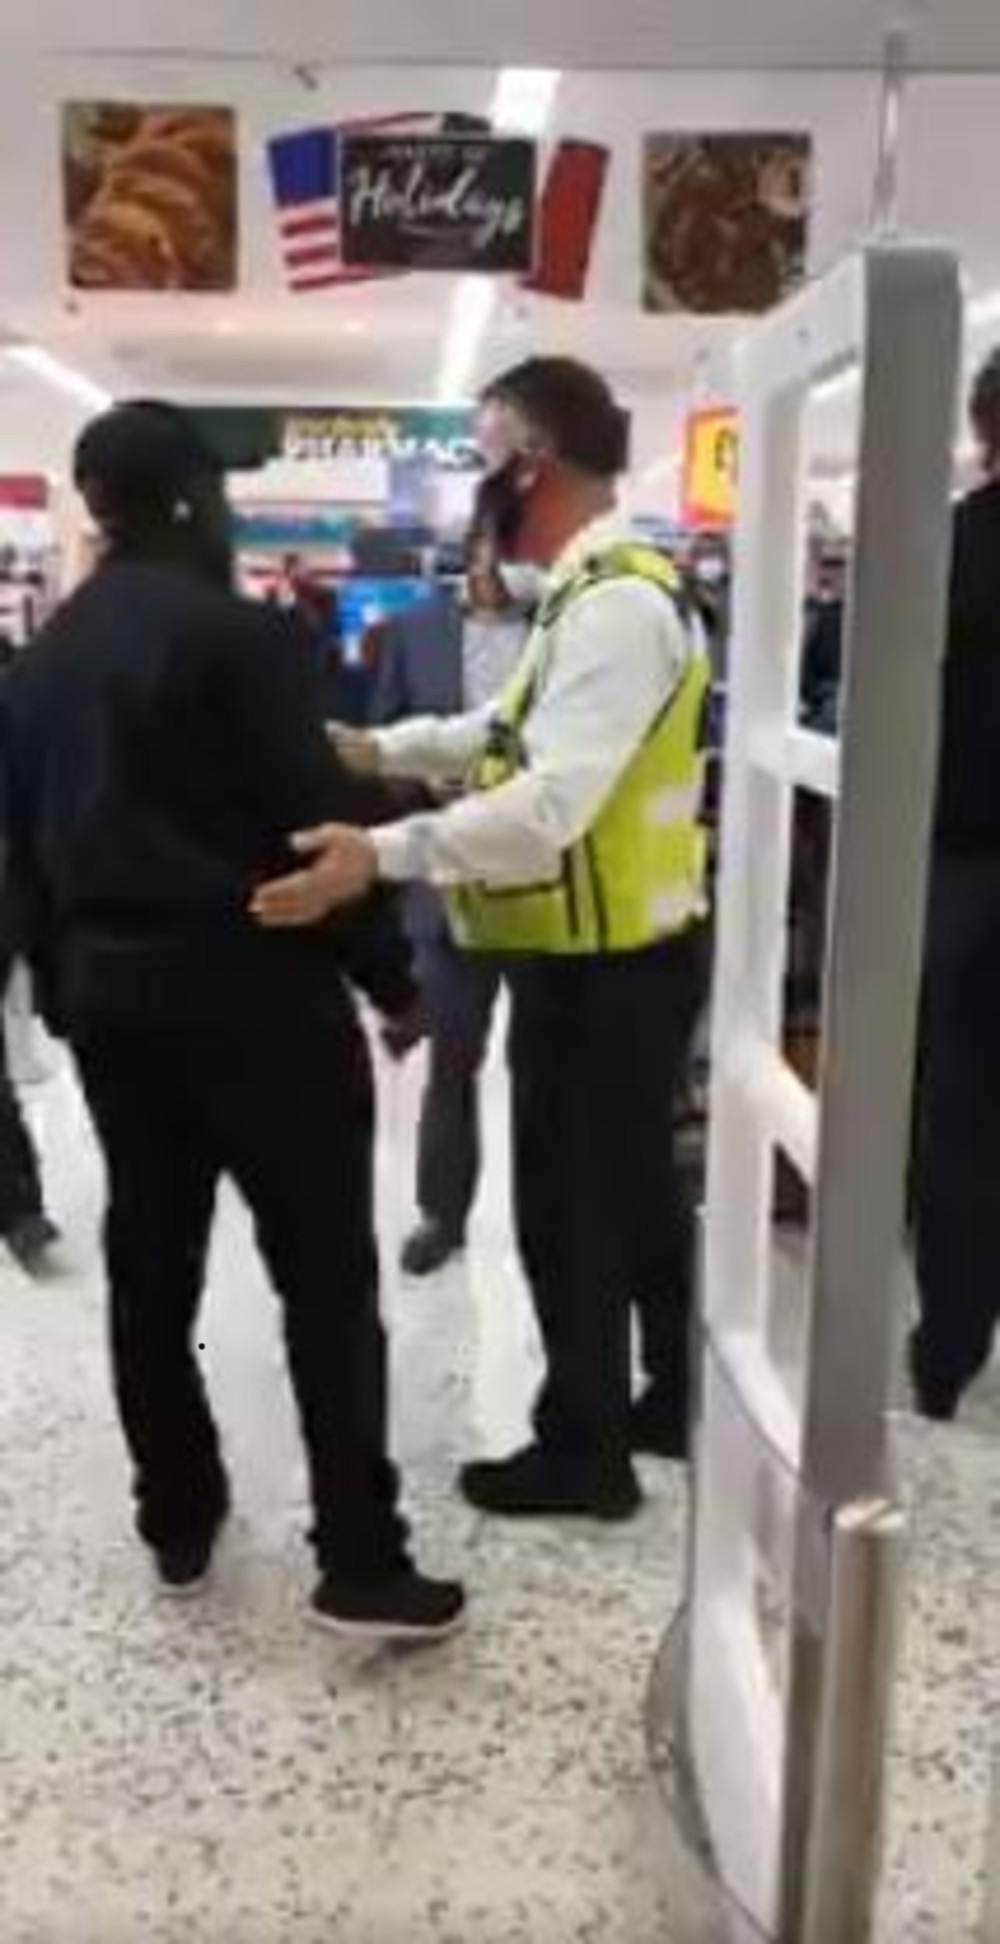 Morrisons security worker